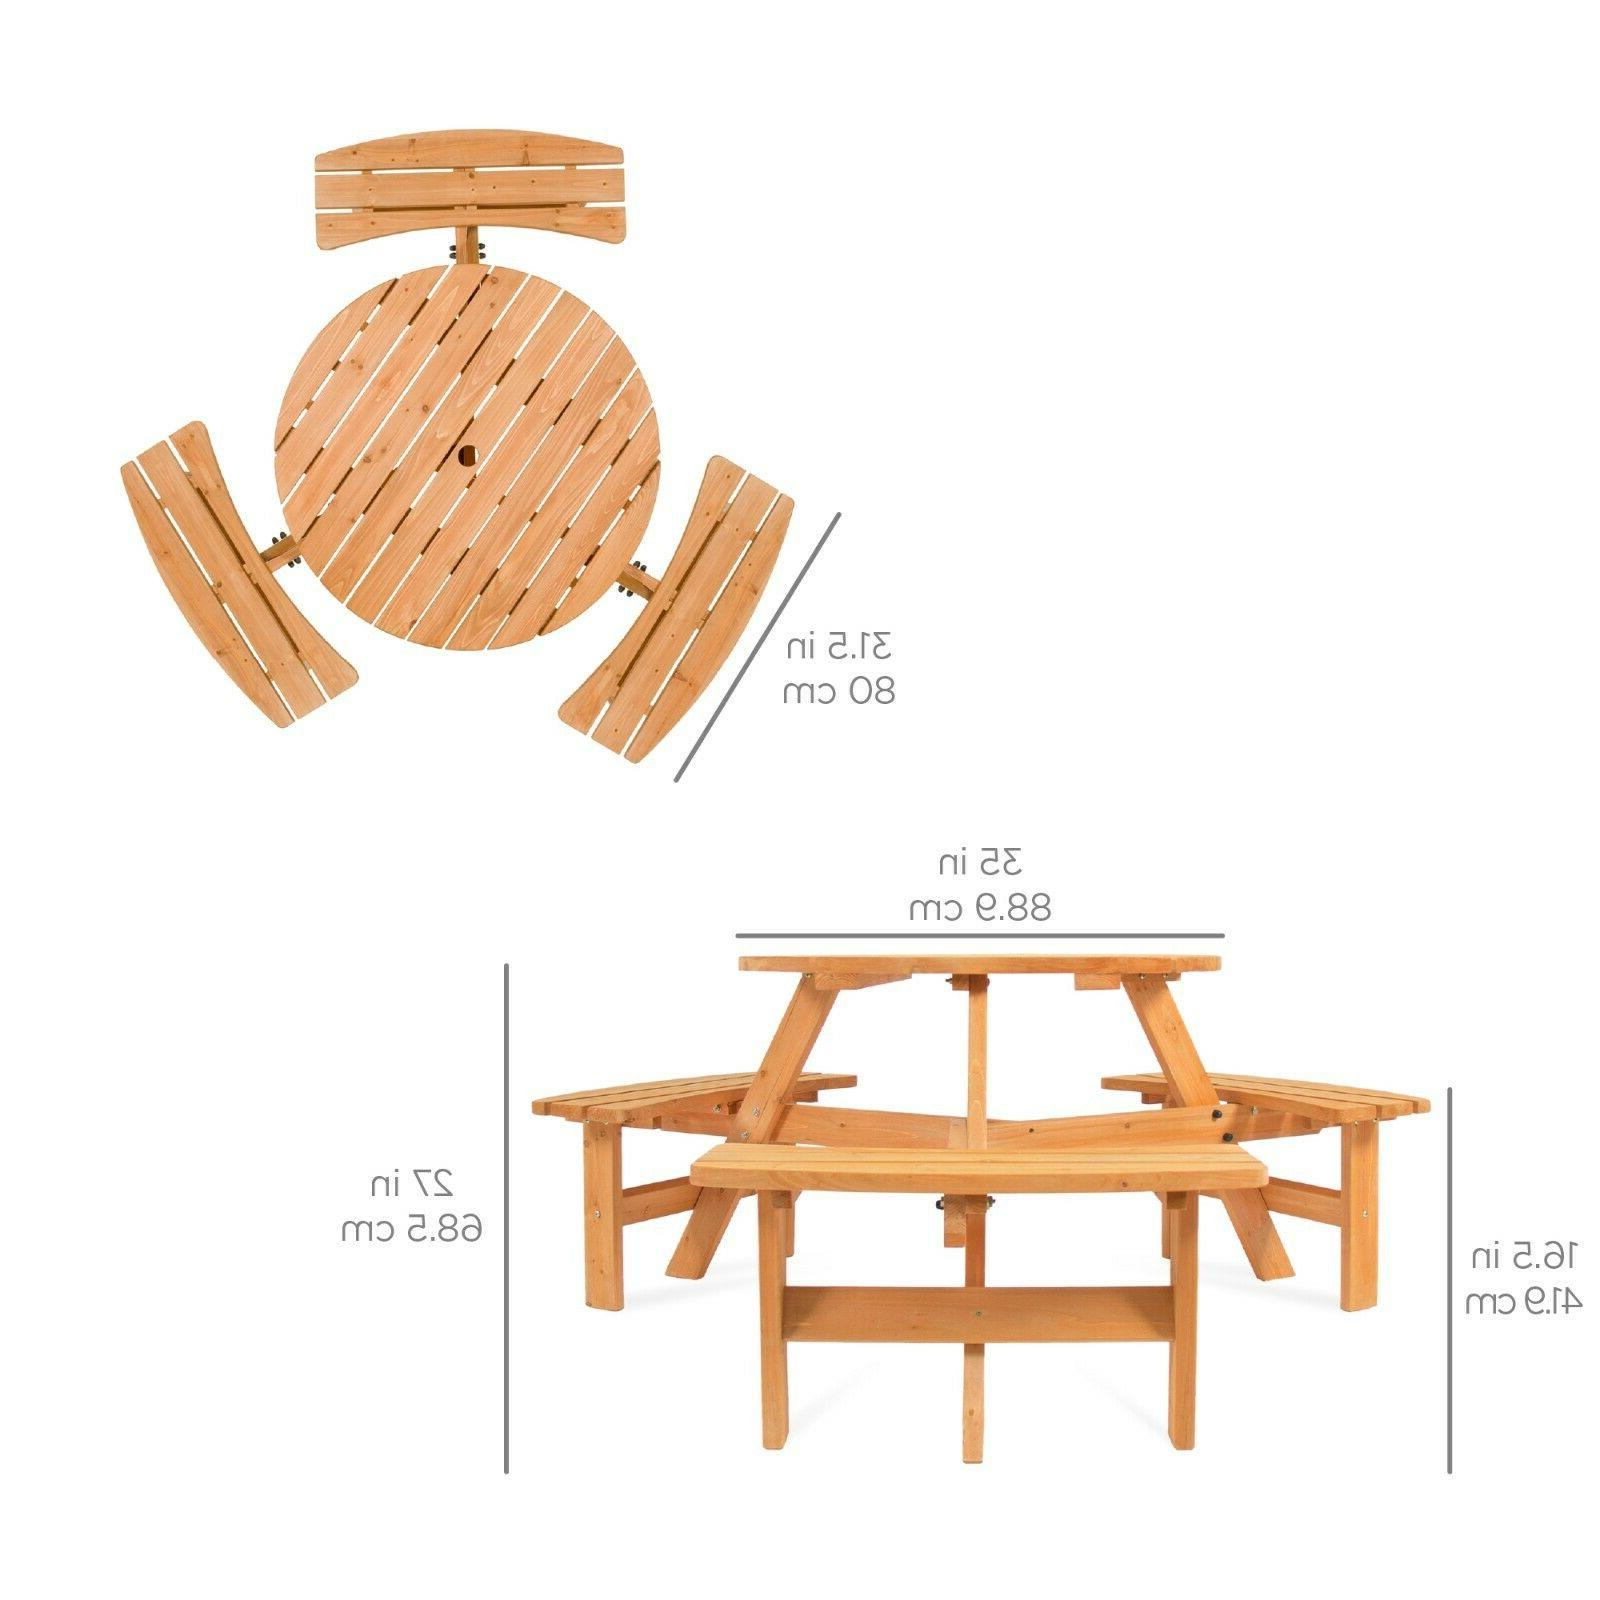 Best Choice Products Circular Table 3 Built-in